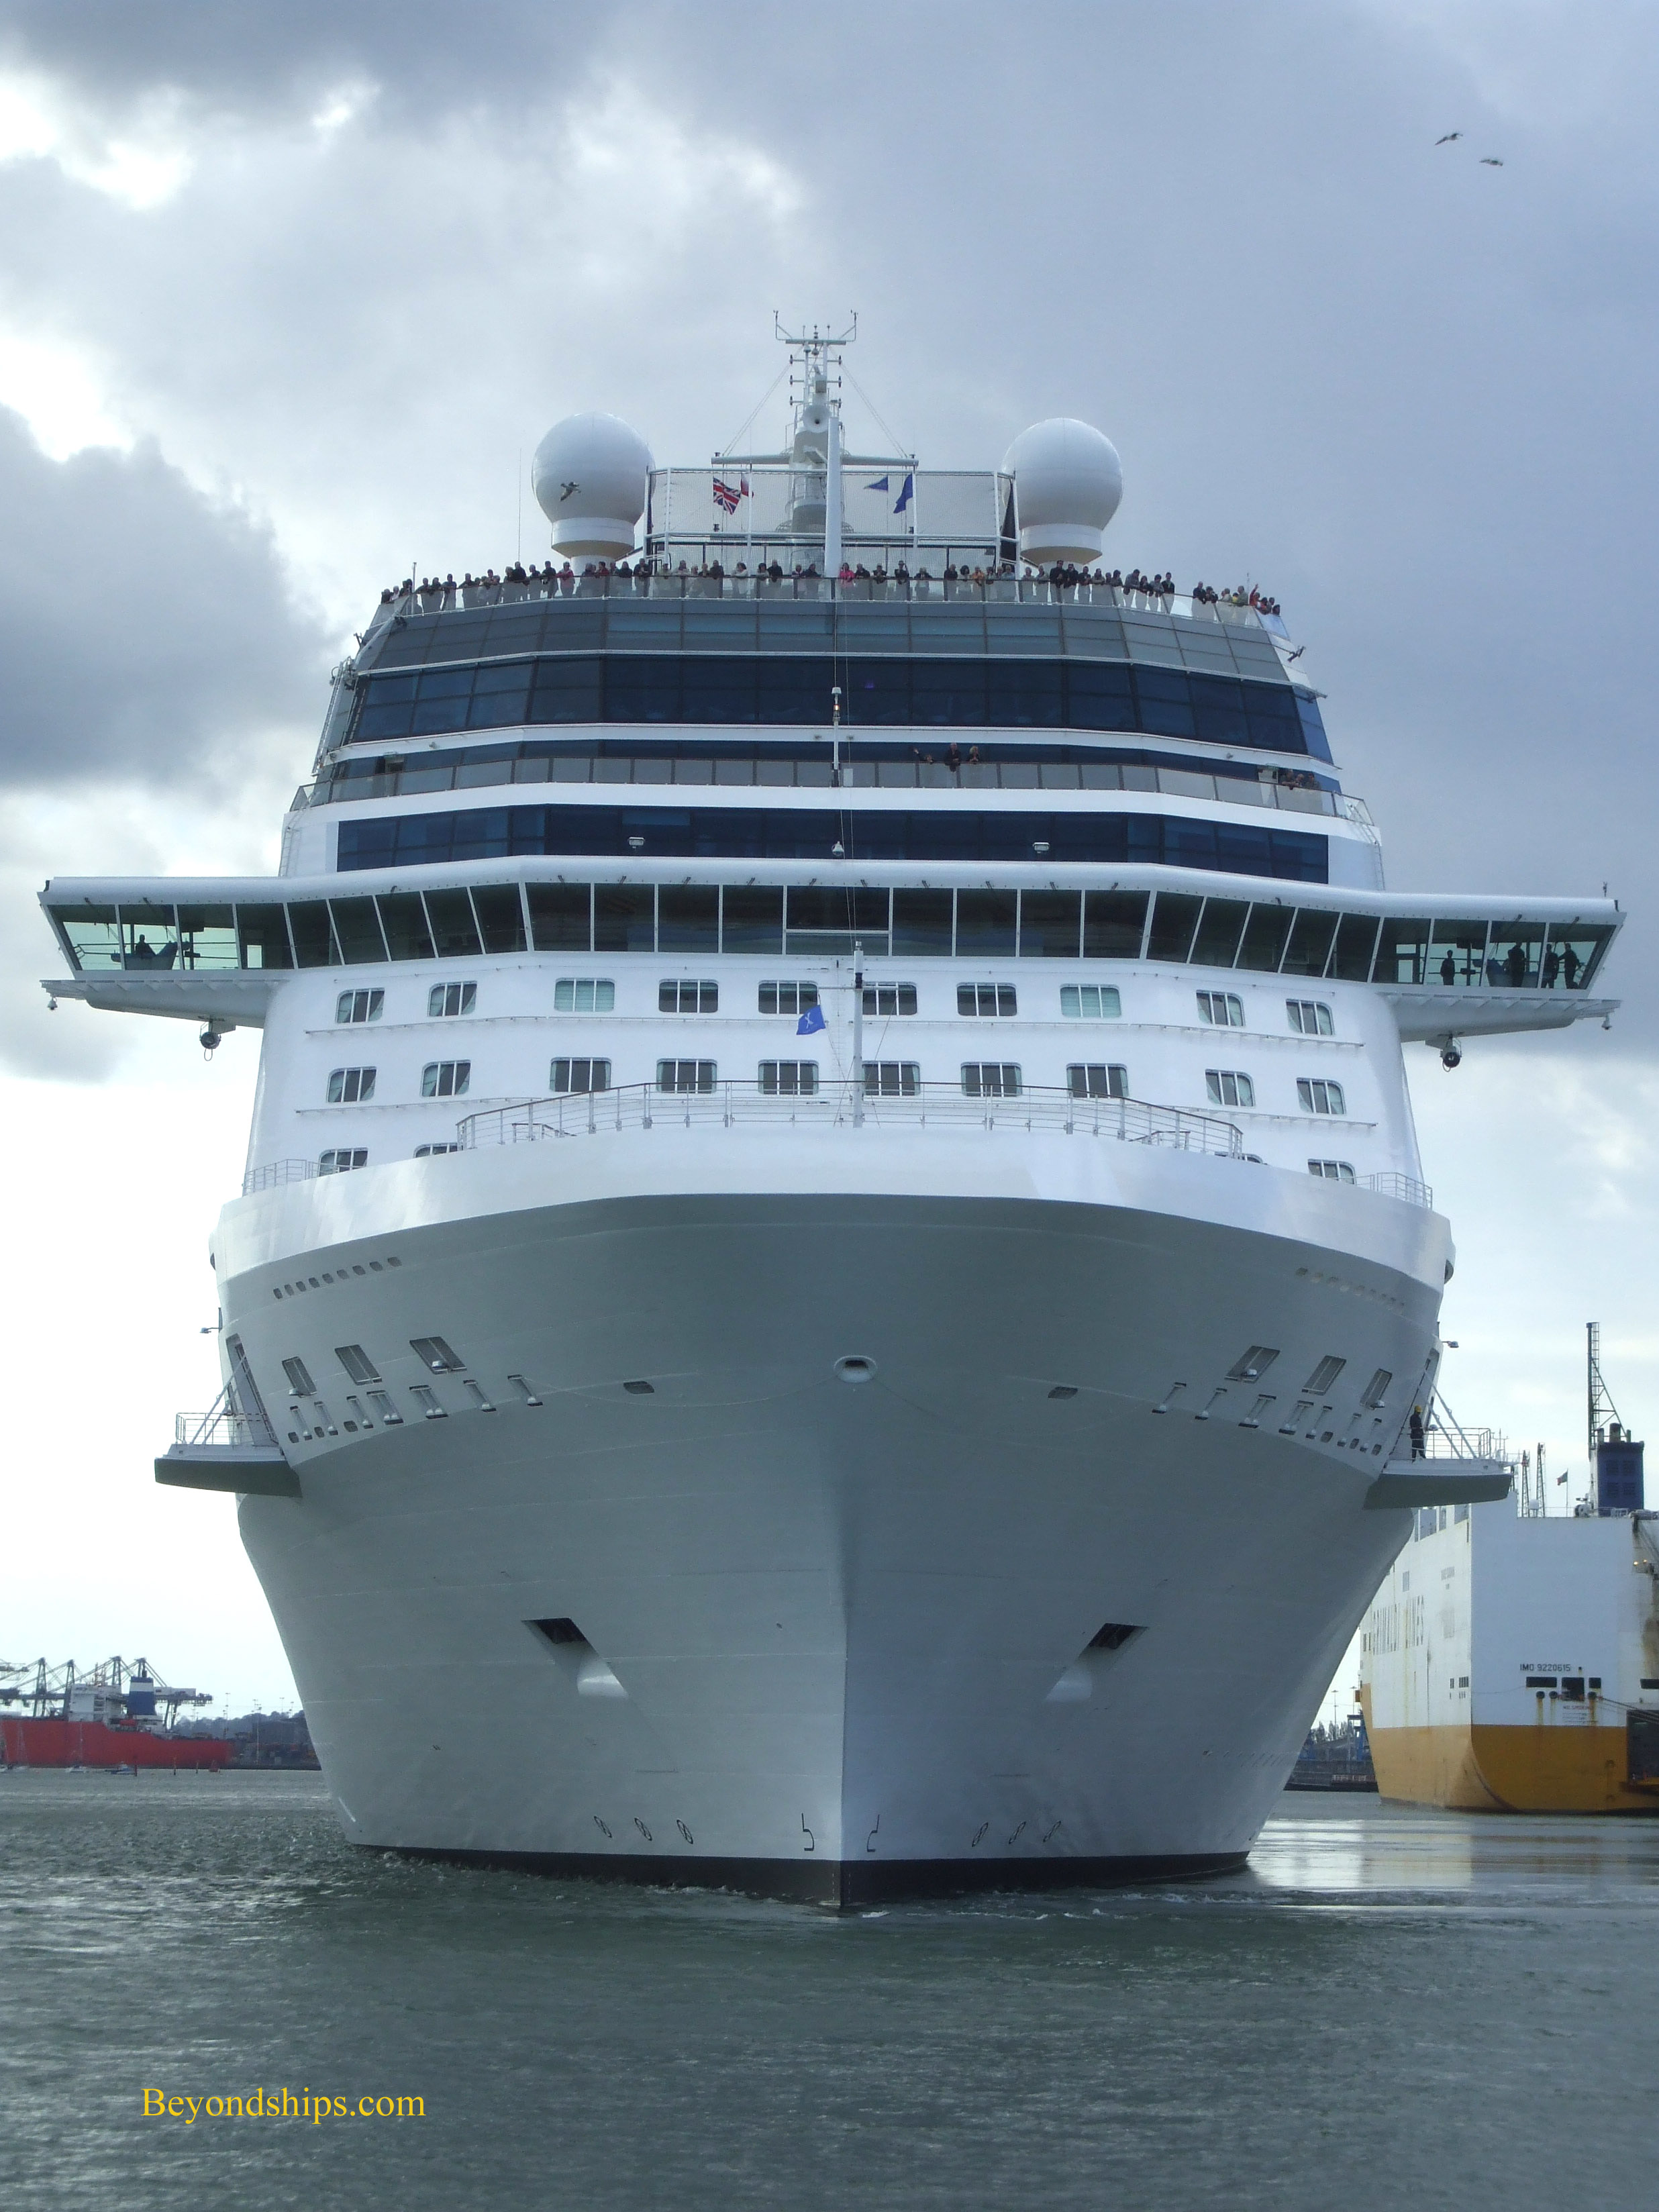 Beyondships Cruise Destinations and Ports